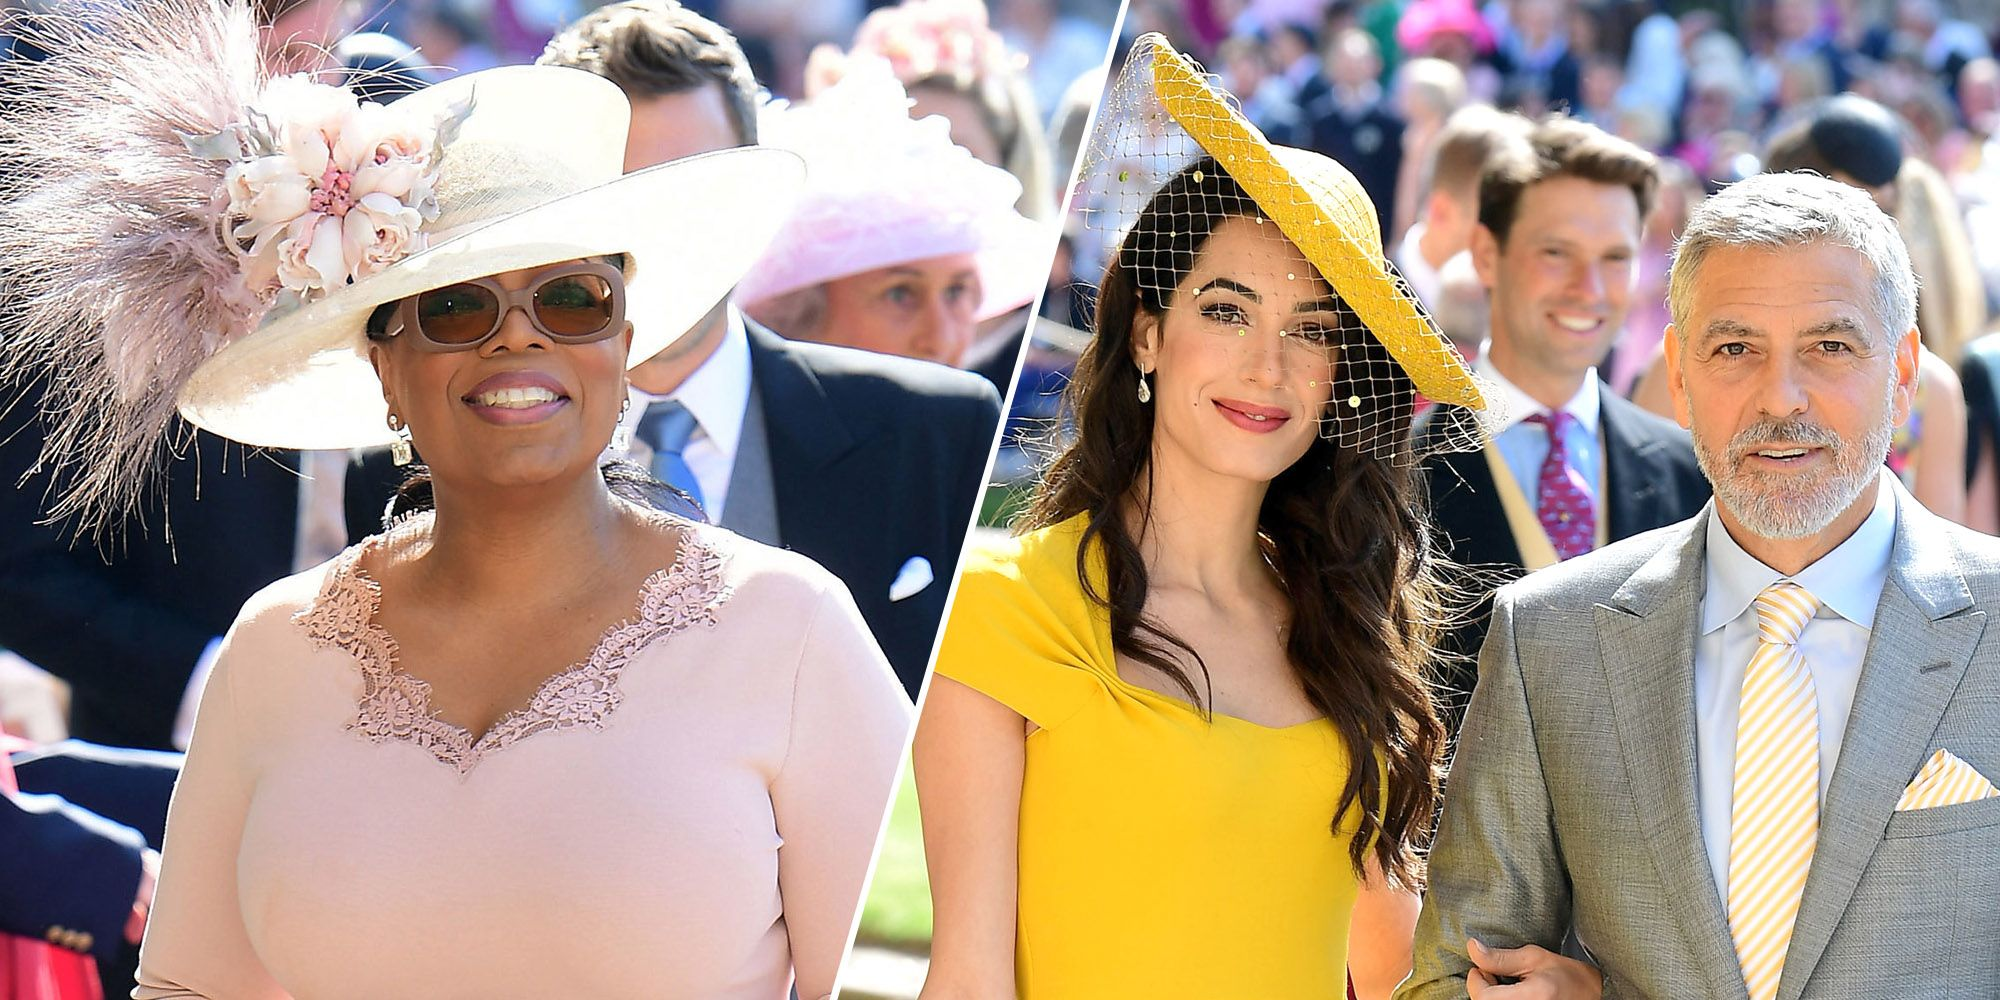 Guests At Royal Wedding.Royal Wedding Best Dressed List Prince Harry And Meghan Markle